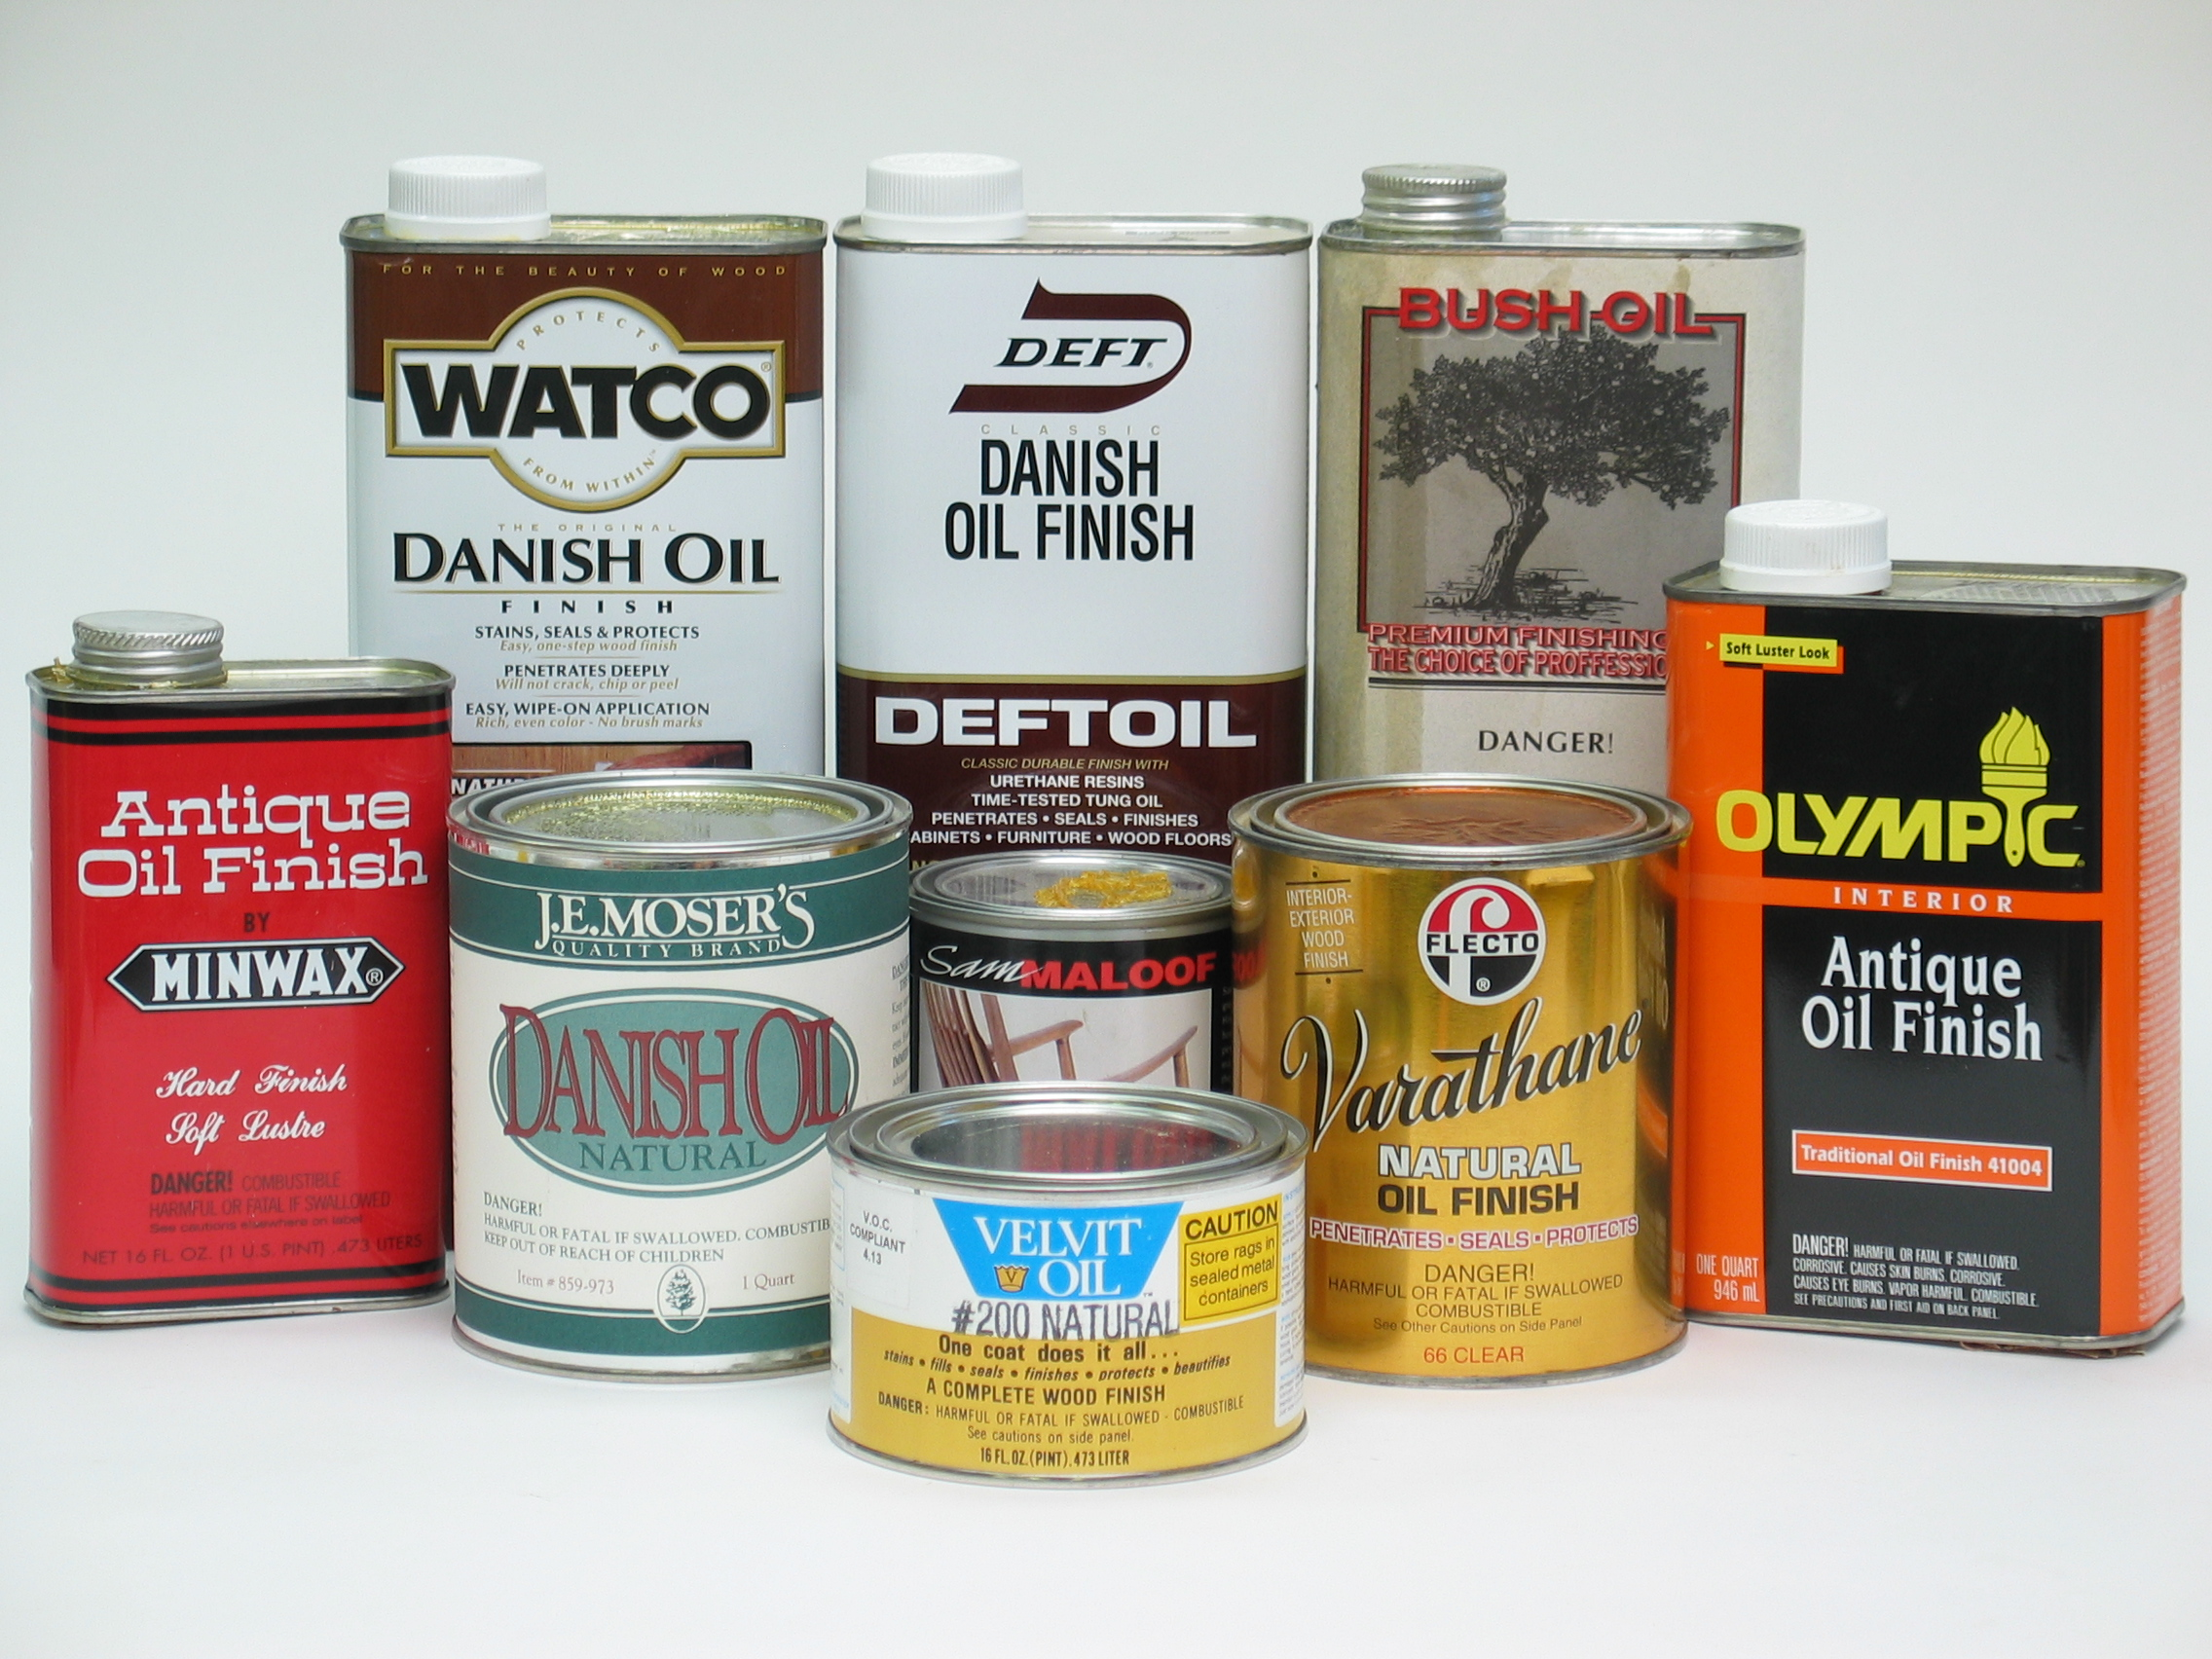 Watco and 3 Other Danish Oil Brands You Can Use to Get That Gorgeous